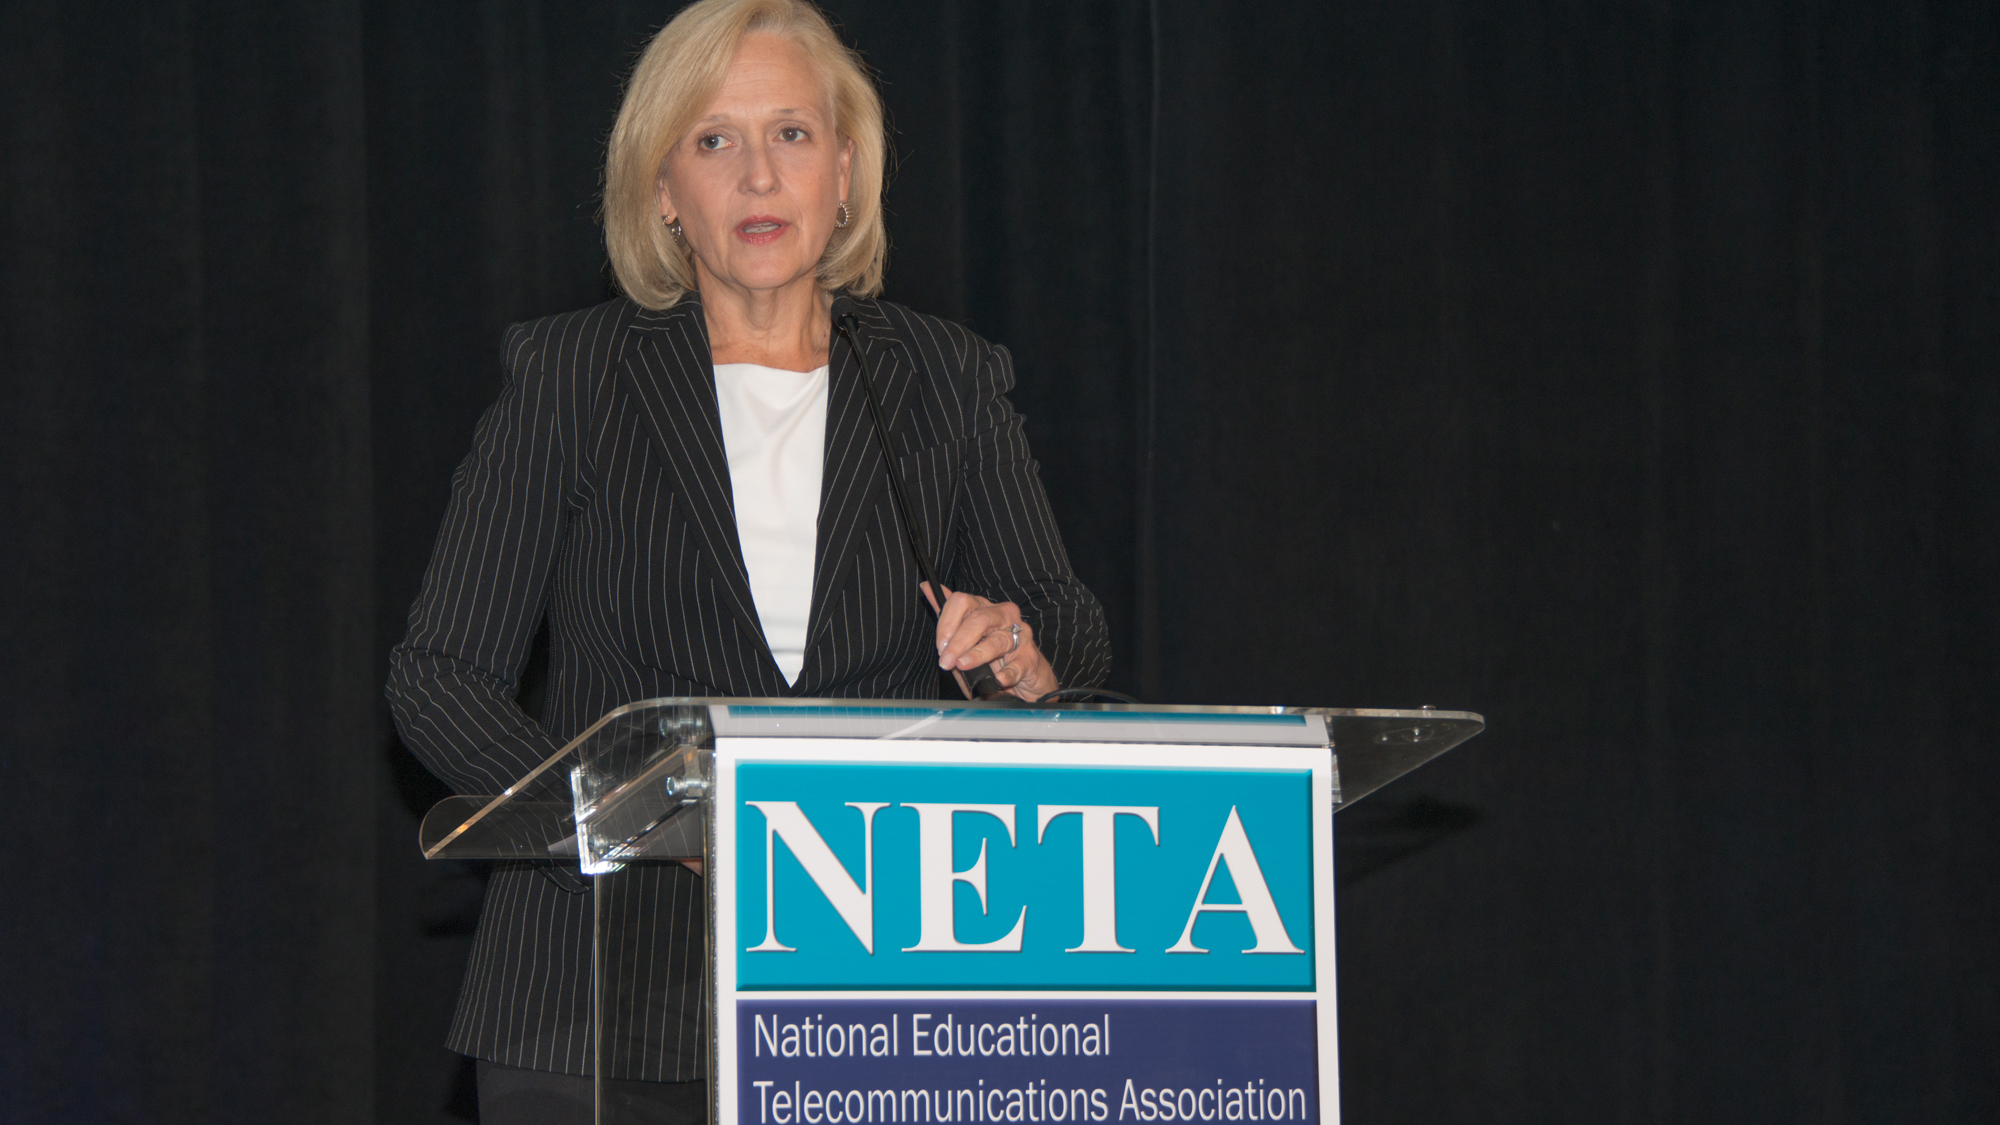 Remarks at 2015 NETA Conference